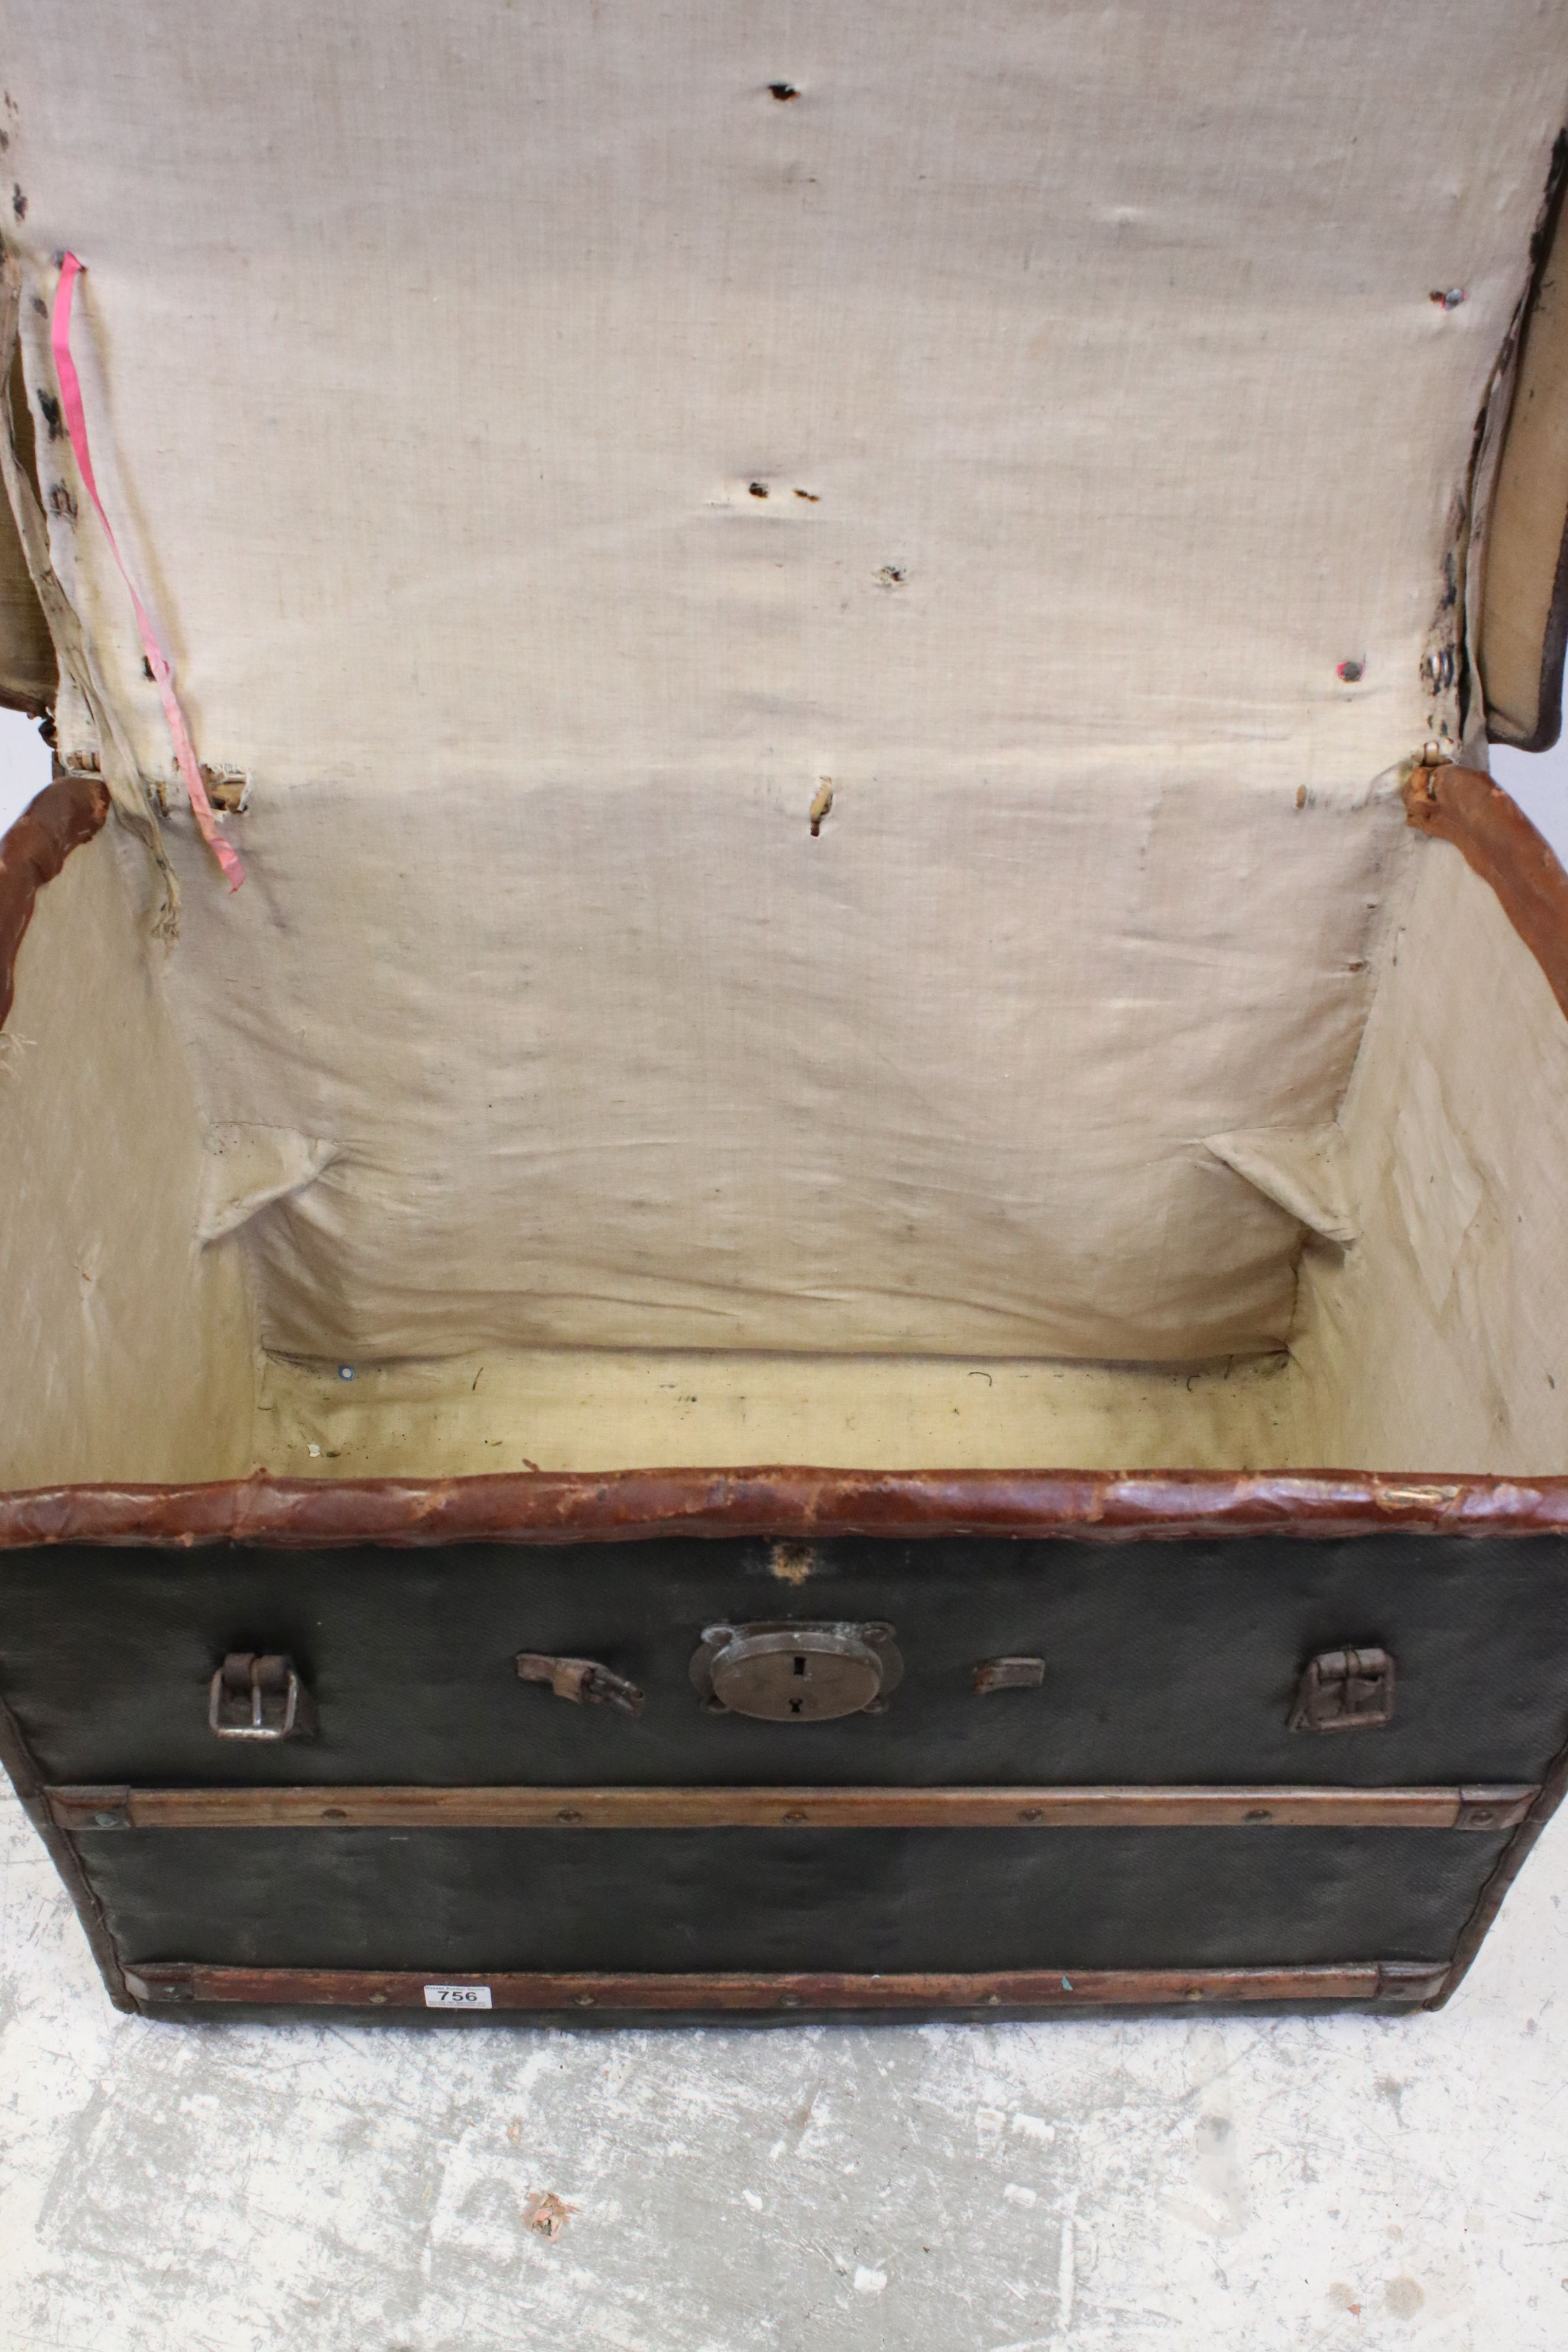 19th century Domed Top Wicker Leather Bound Travelling Trunk with Drop-in Tray, 82cms long x 66cms - Image 4 of 7